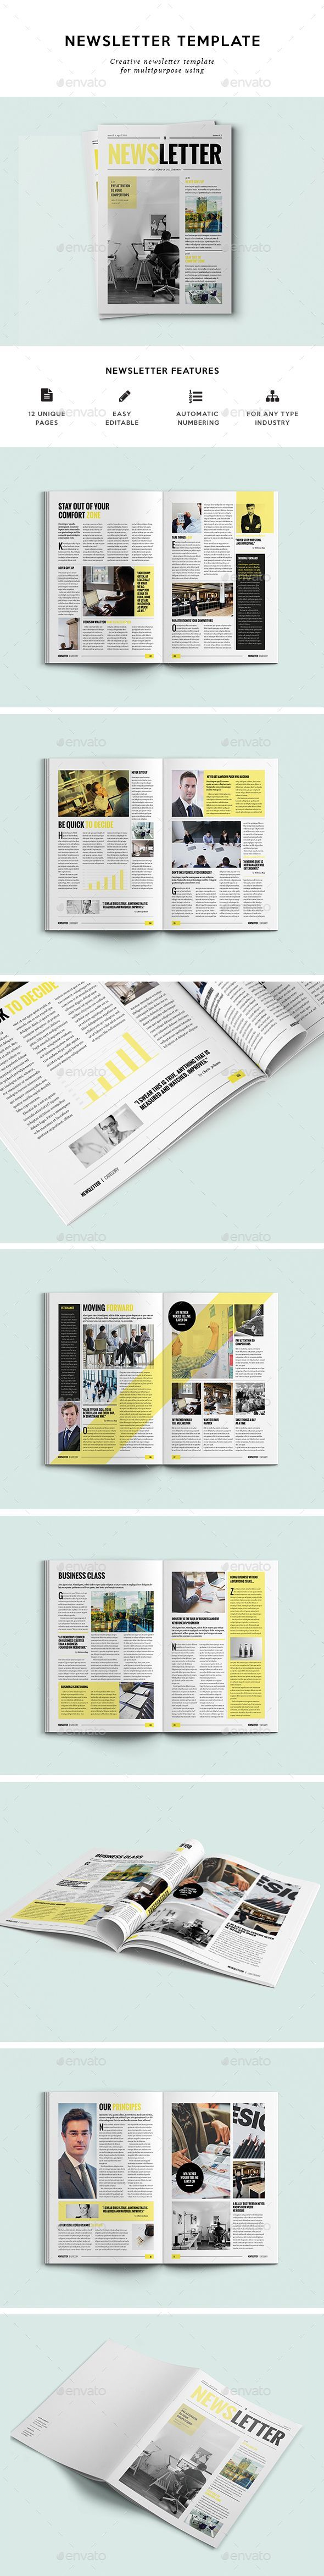 12 Pages Corporate Newsletter | Pinterest | Newsletter templates ...